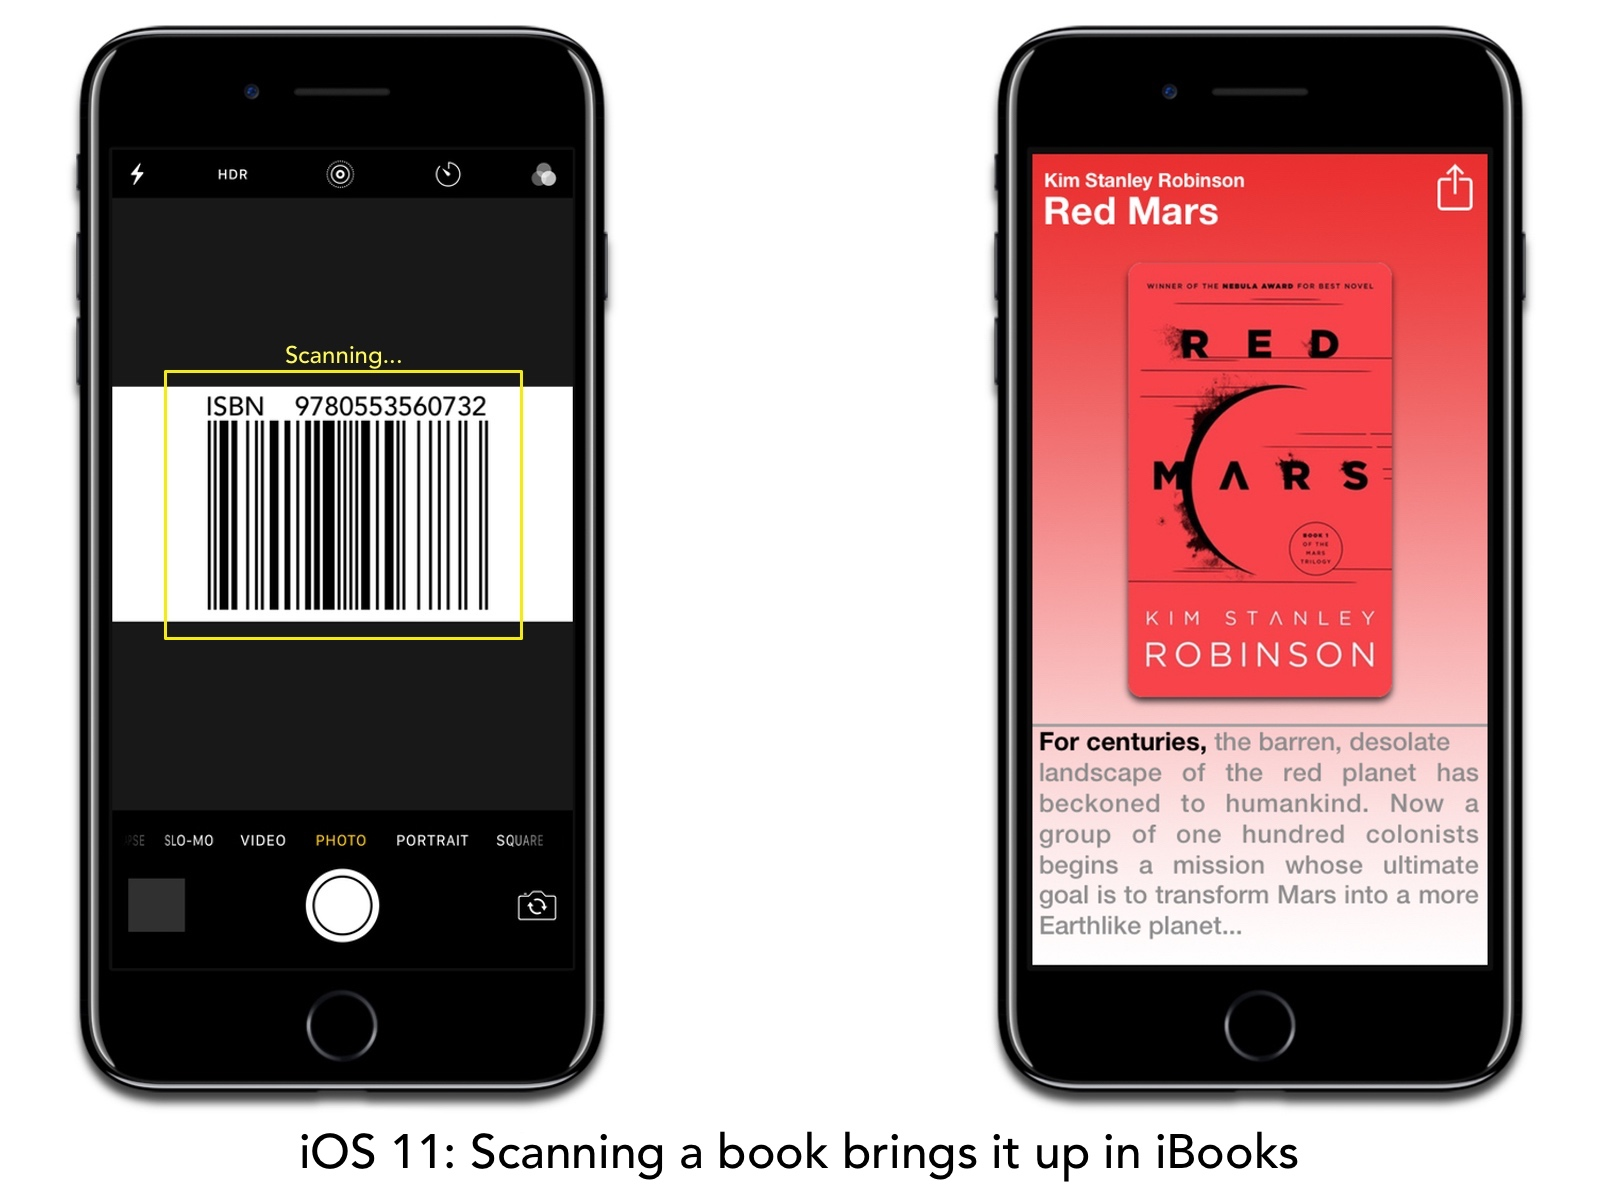 Concept image of iBooks in iOS 11 with URL scanning.